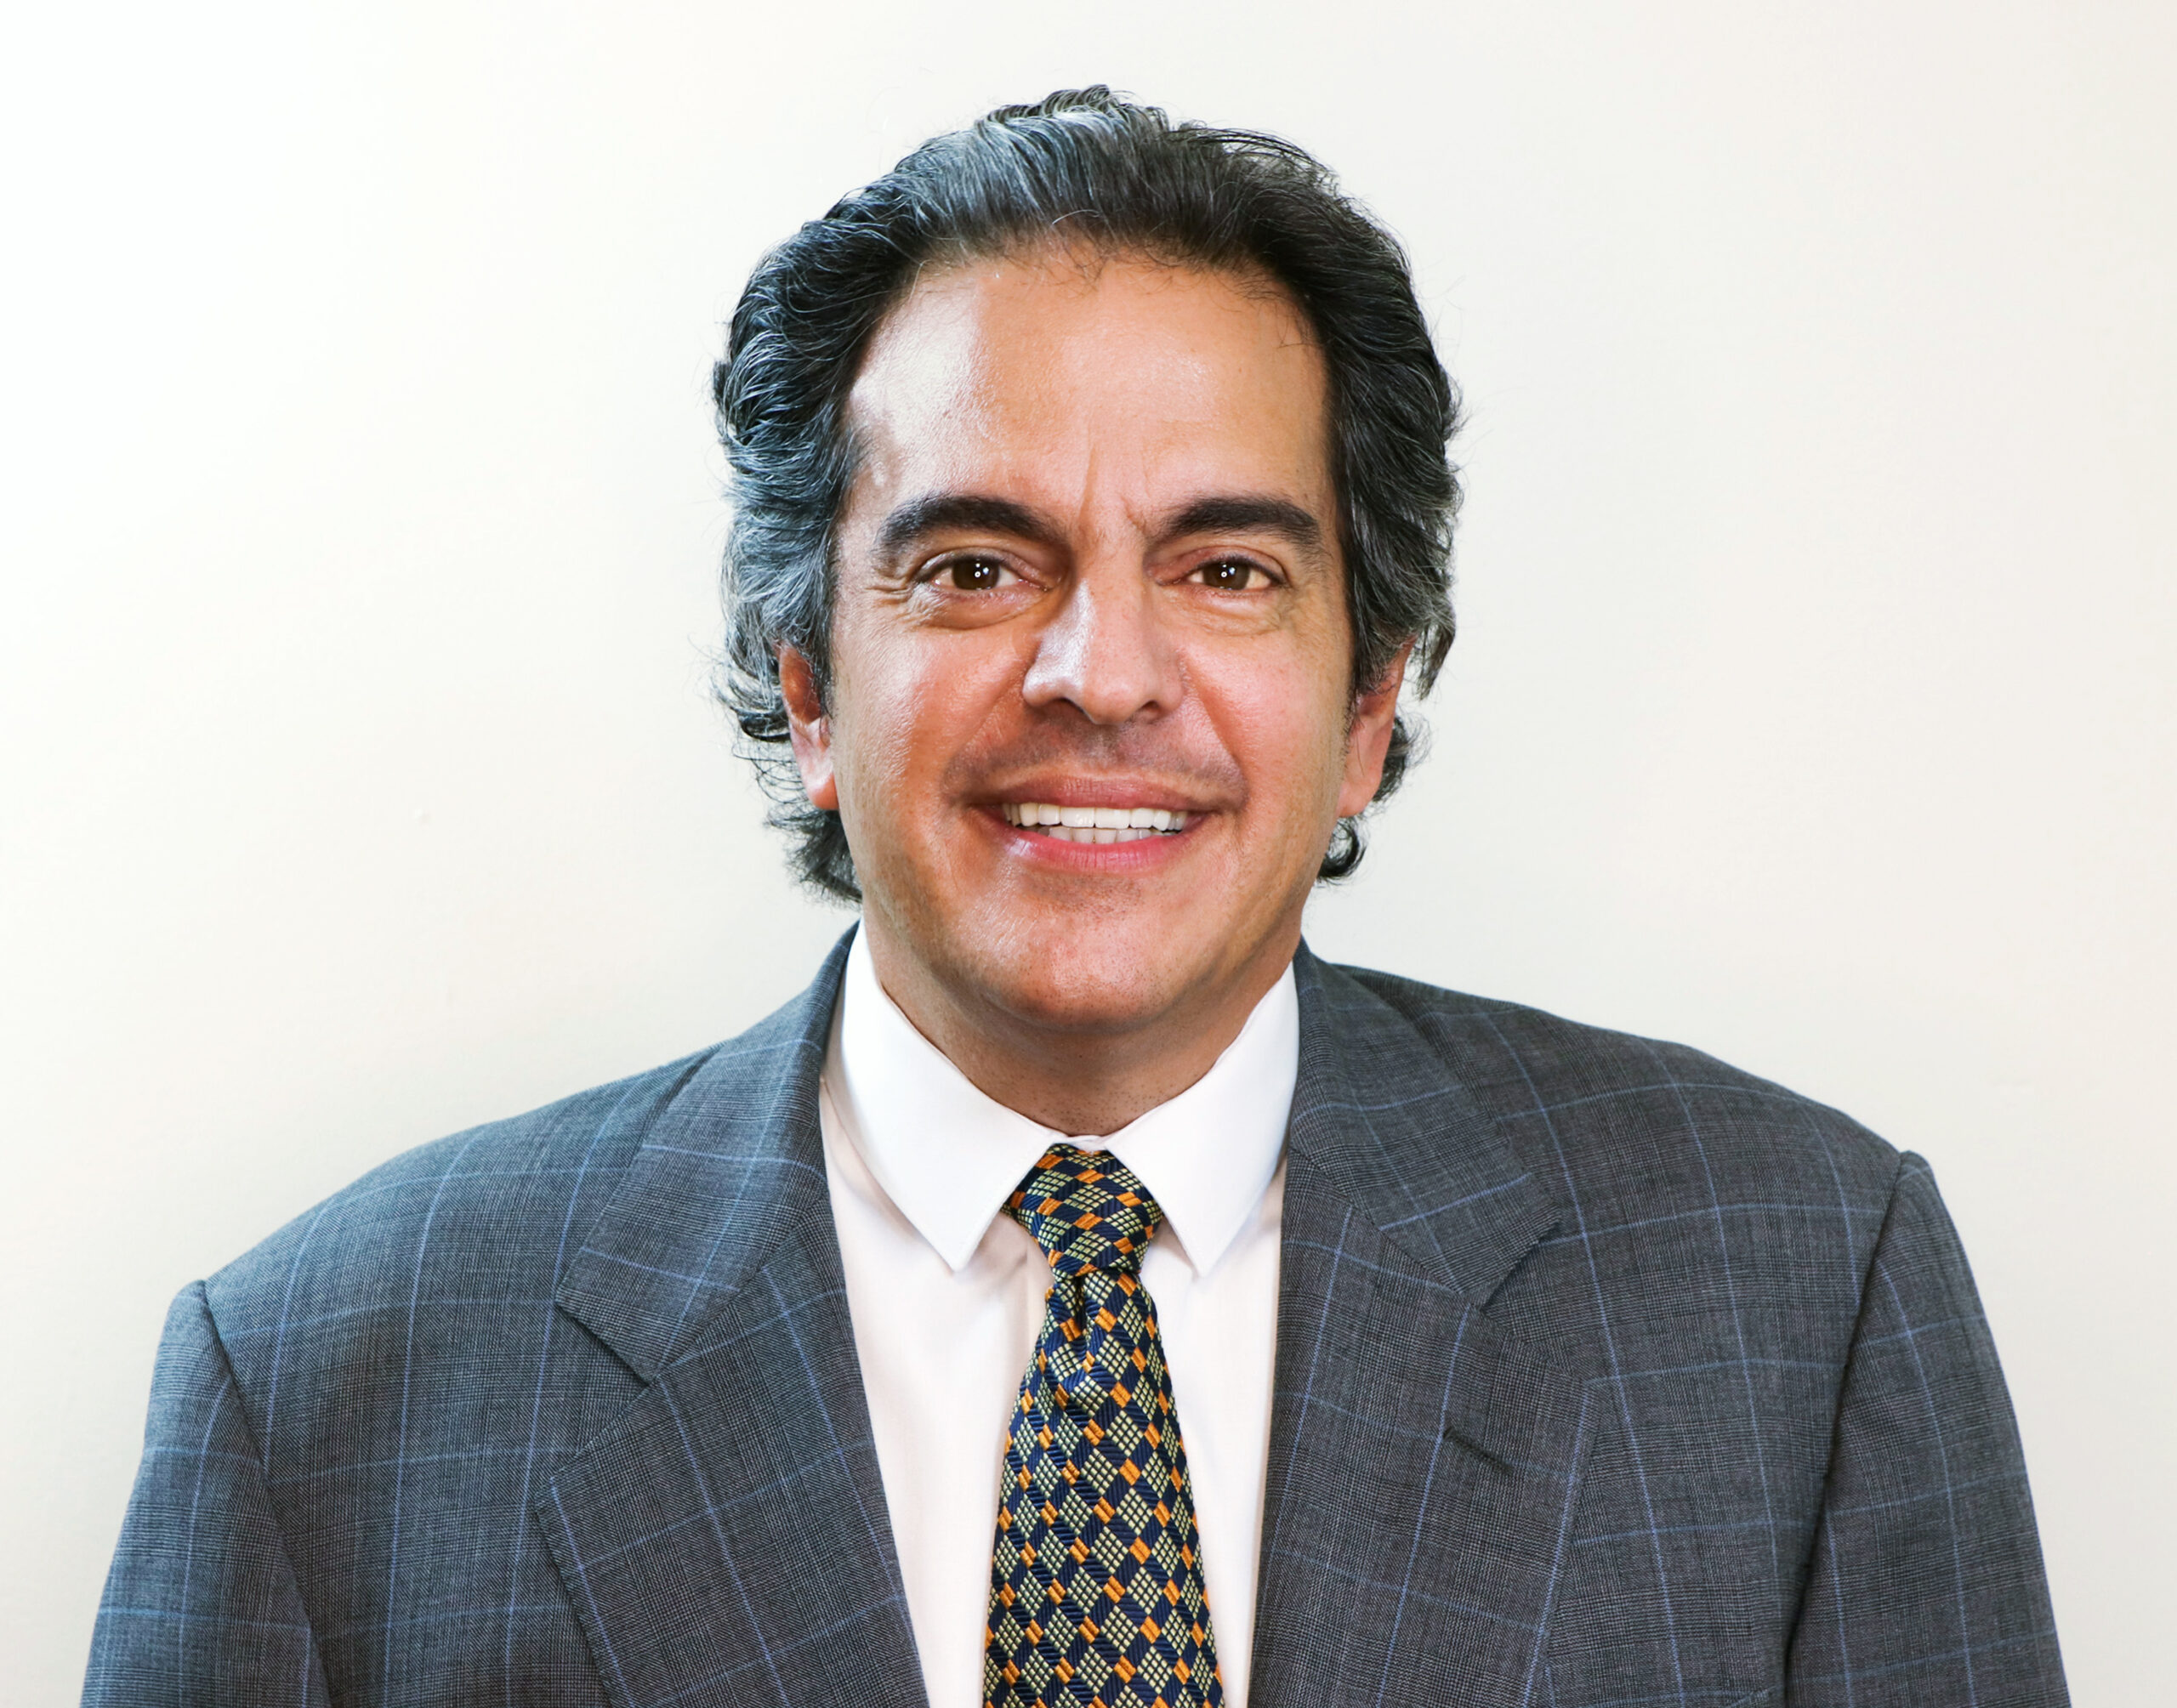 RJ Impastato, Executive Vice President & Director of Client Relations